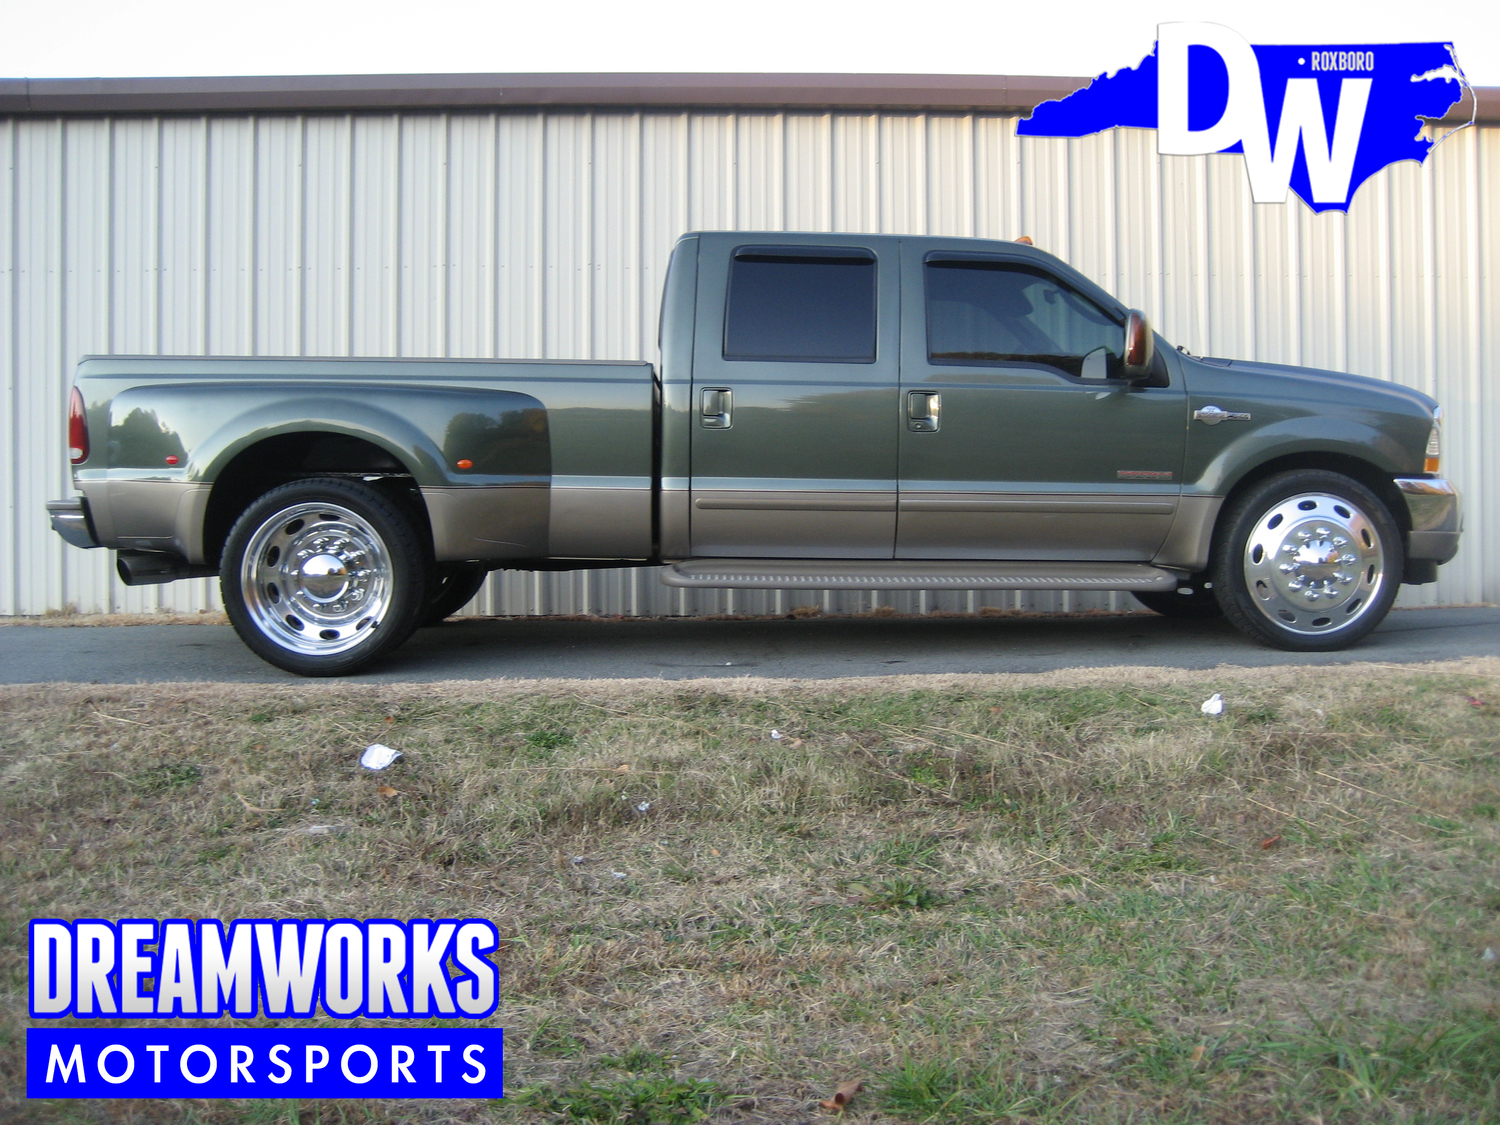 medium resolution of ford f350 semi wheels dreamworks motorsports 2 jpg